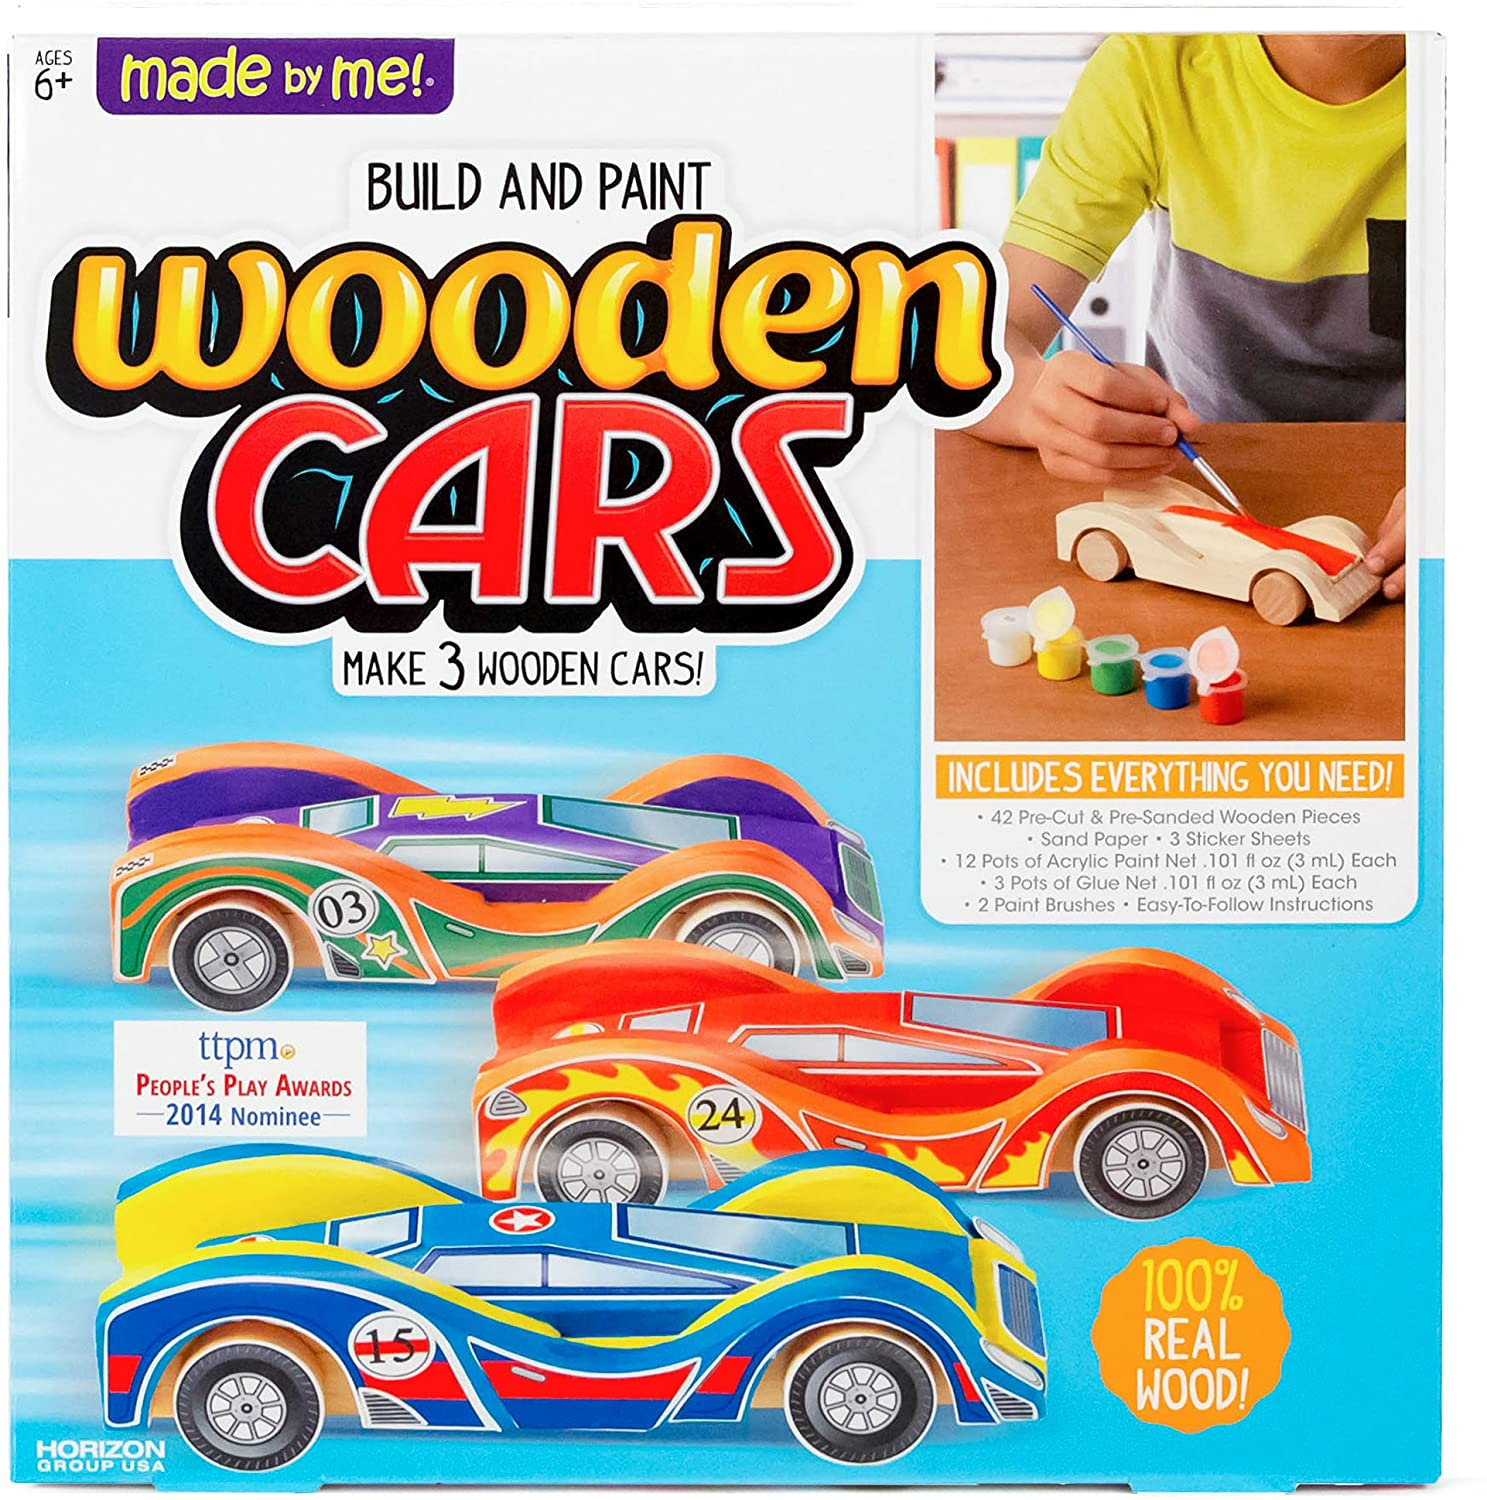 Build and Paint Wooden Cars Kit